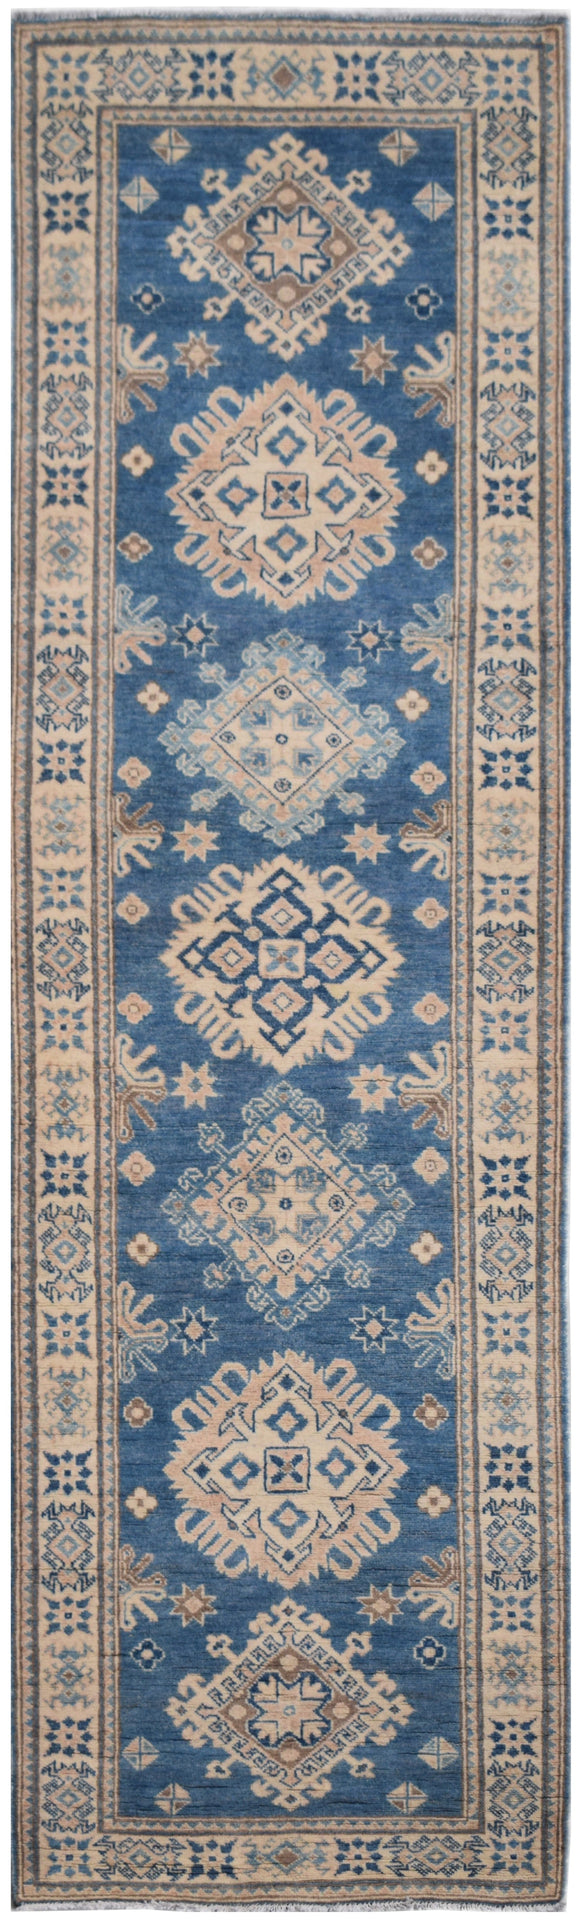 Handmade Sultan Collection Hallway Runner | 288 x 80 cm